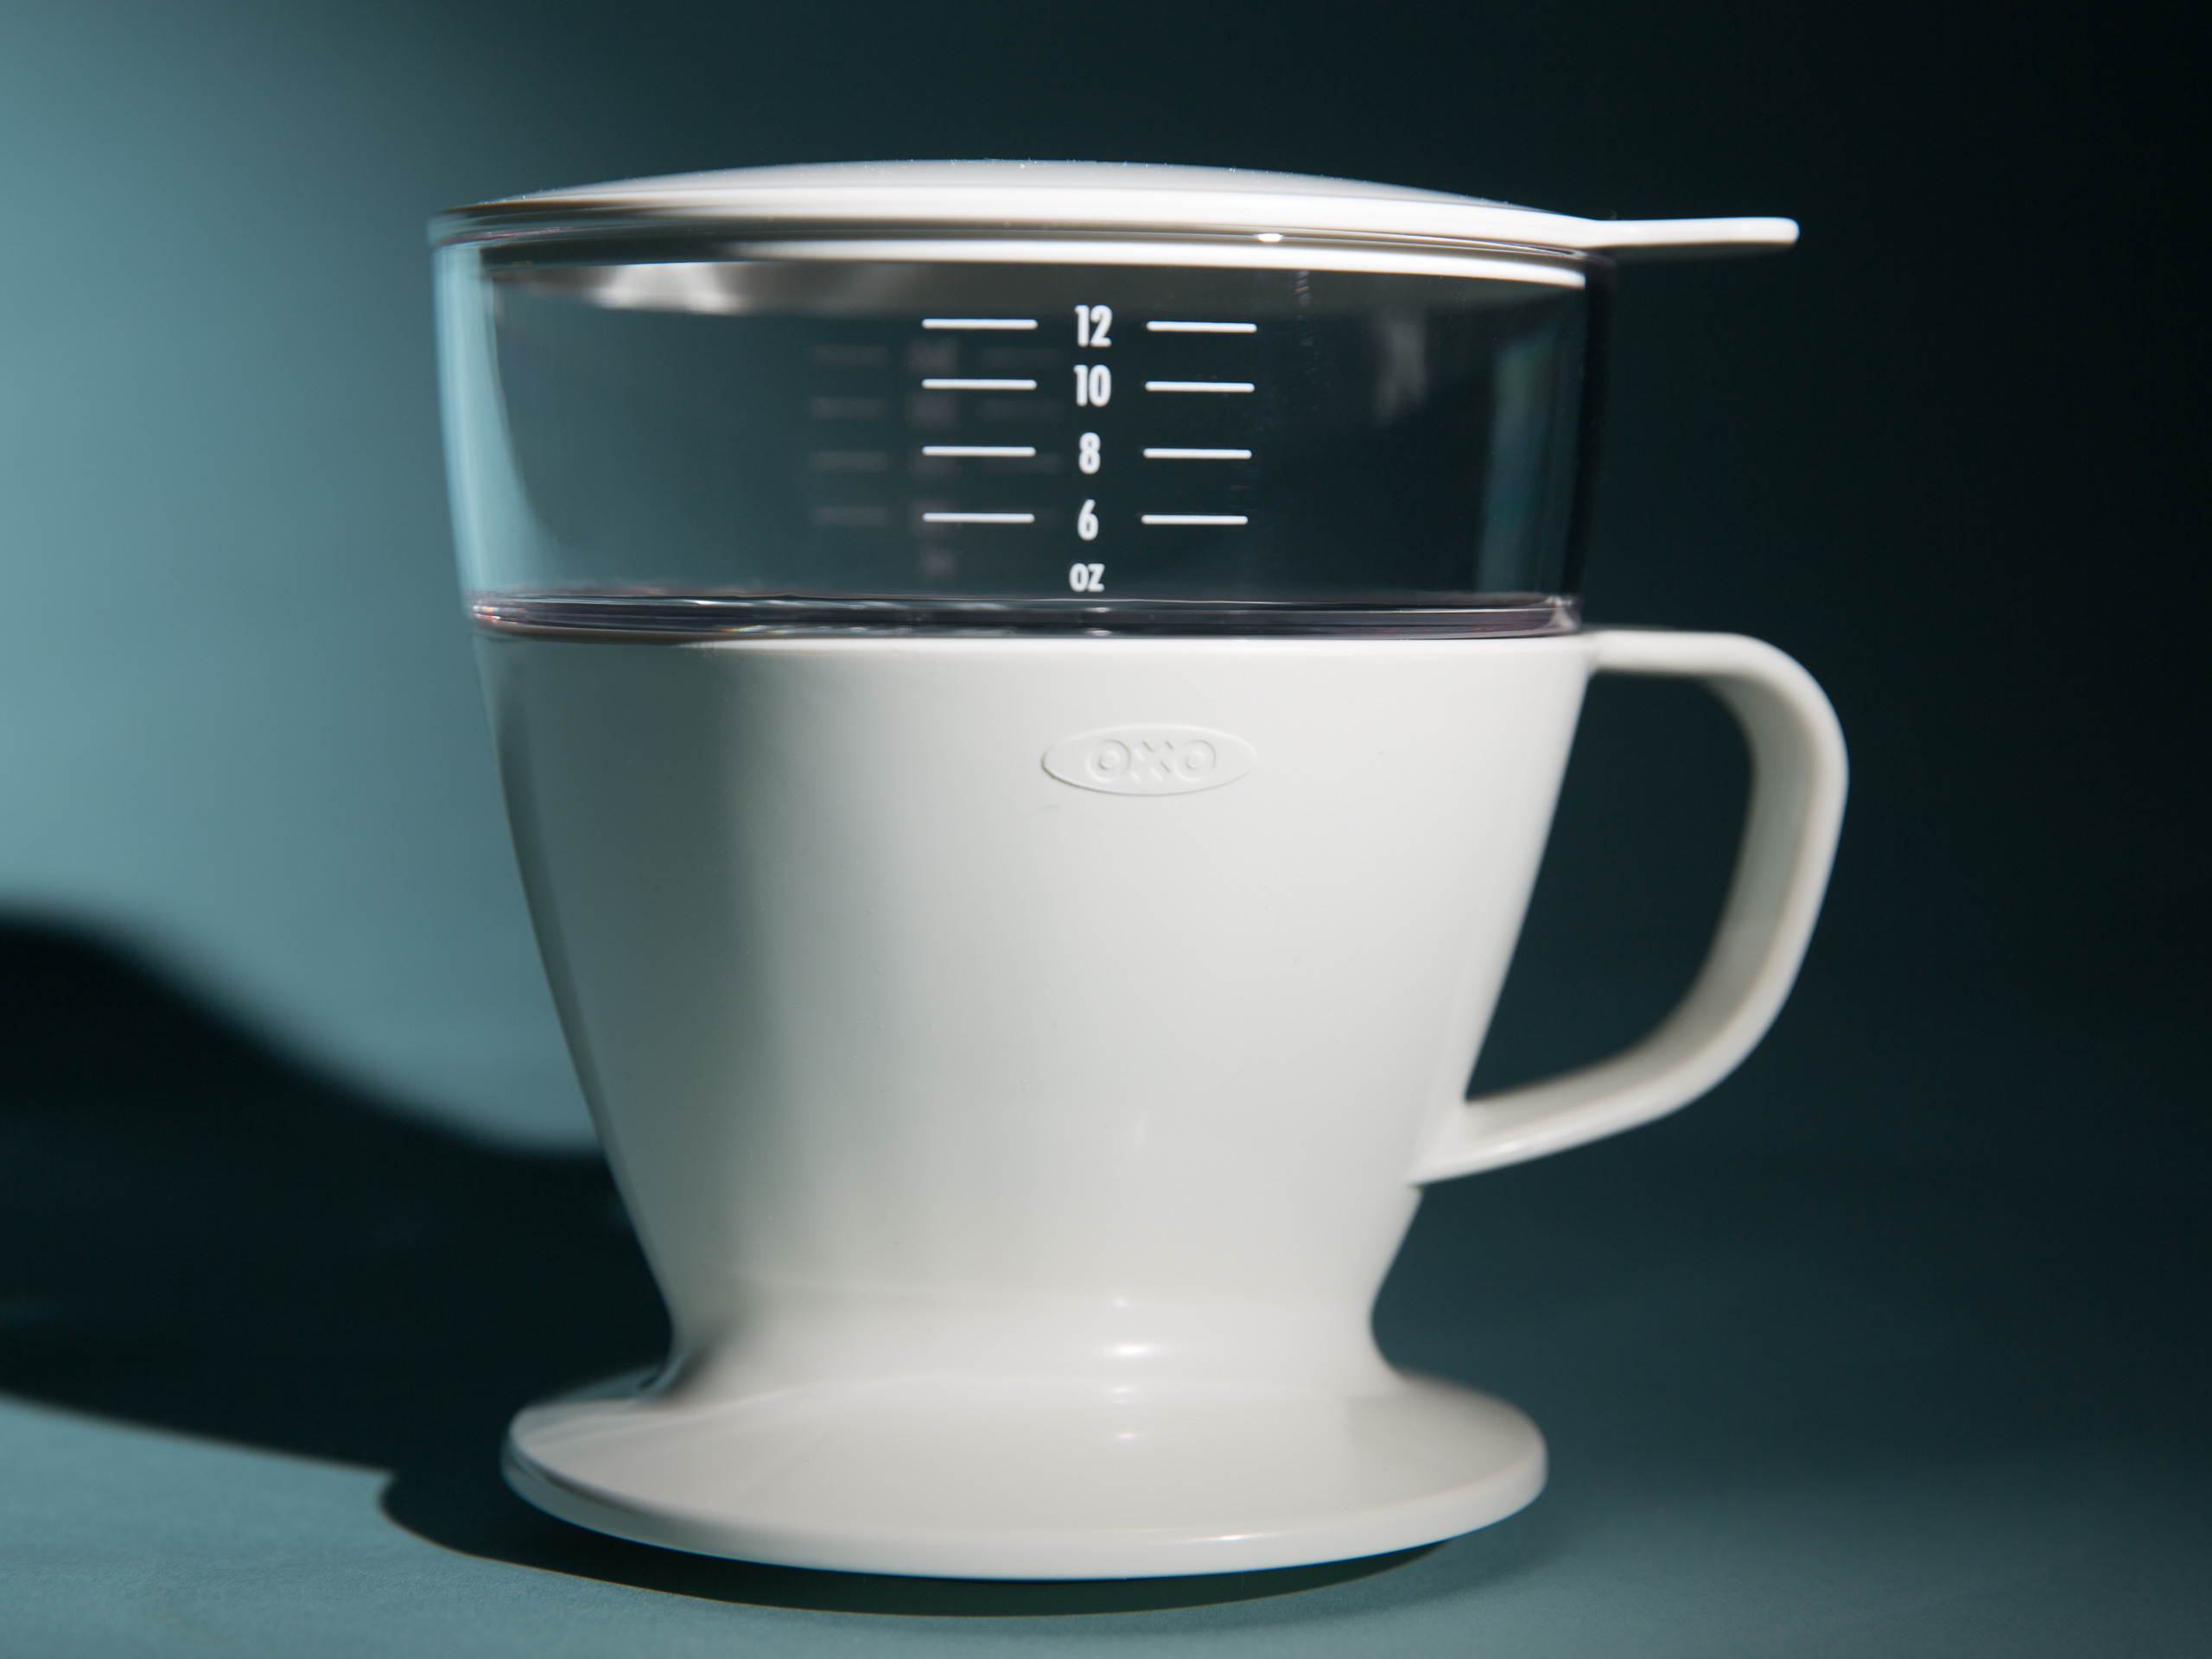 oxo-good-grips-pour-over-coffee-maker-product-photos-1.jpg